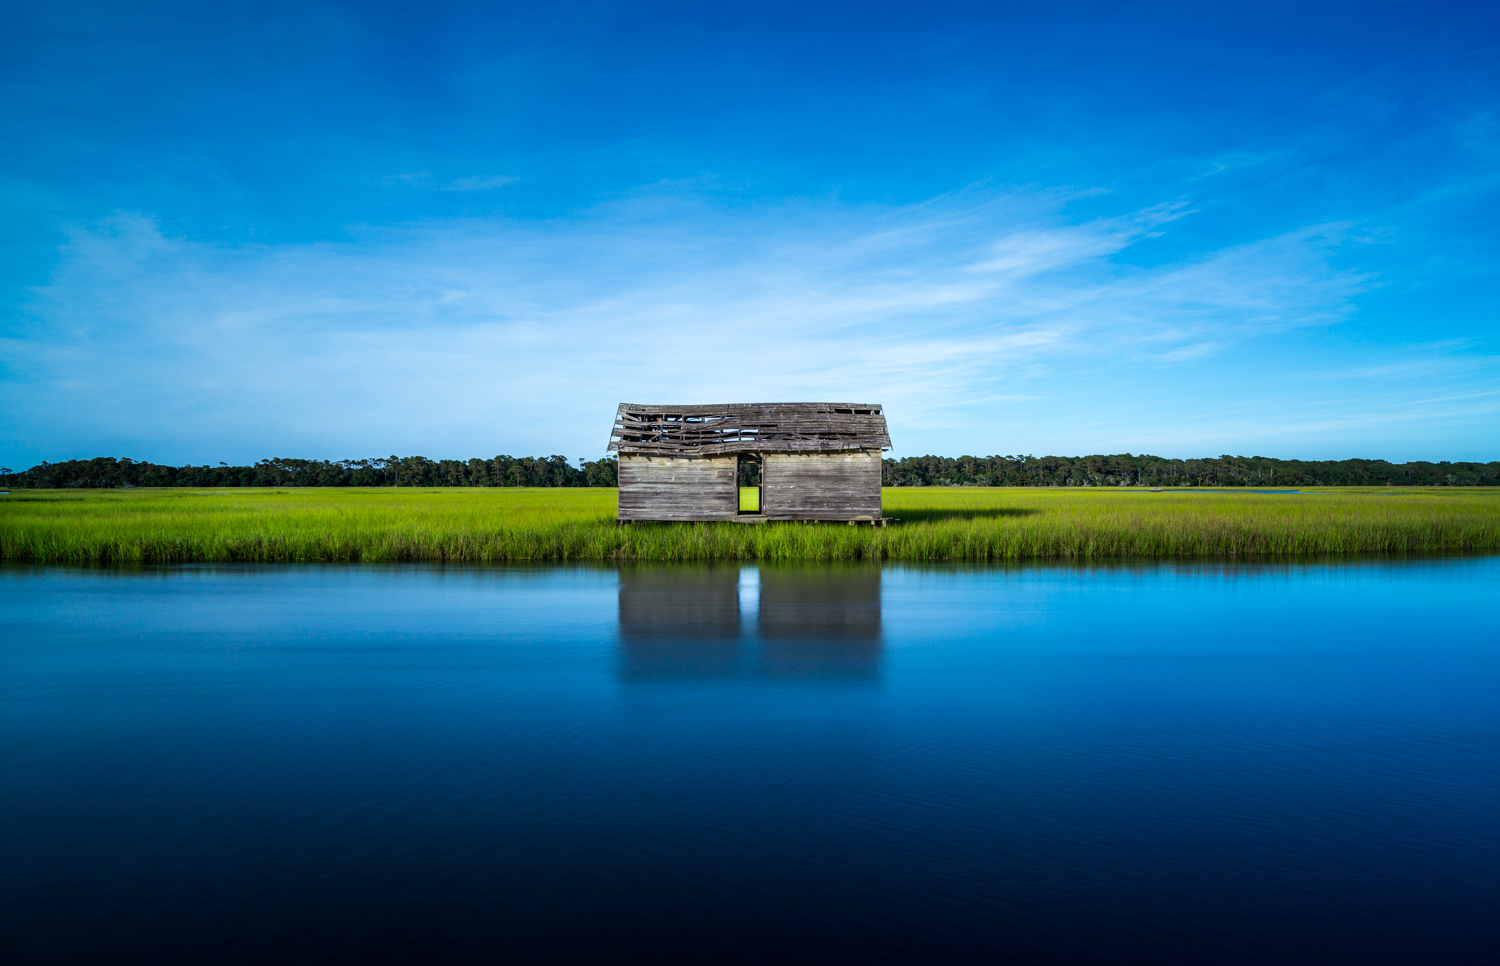 Baldhead Island North Carolina Boat House Landscape